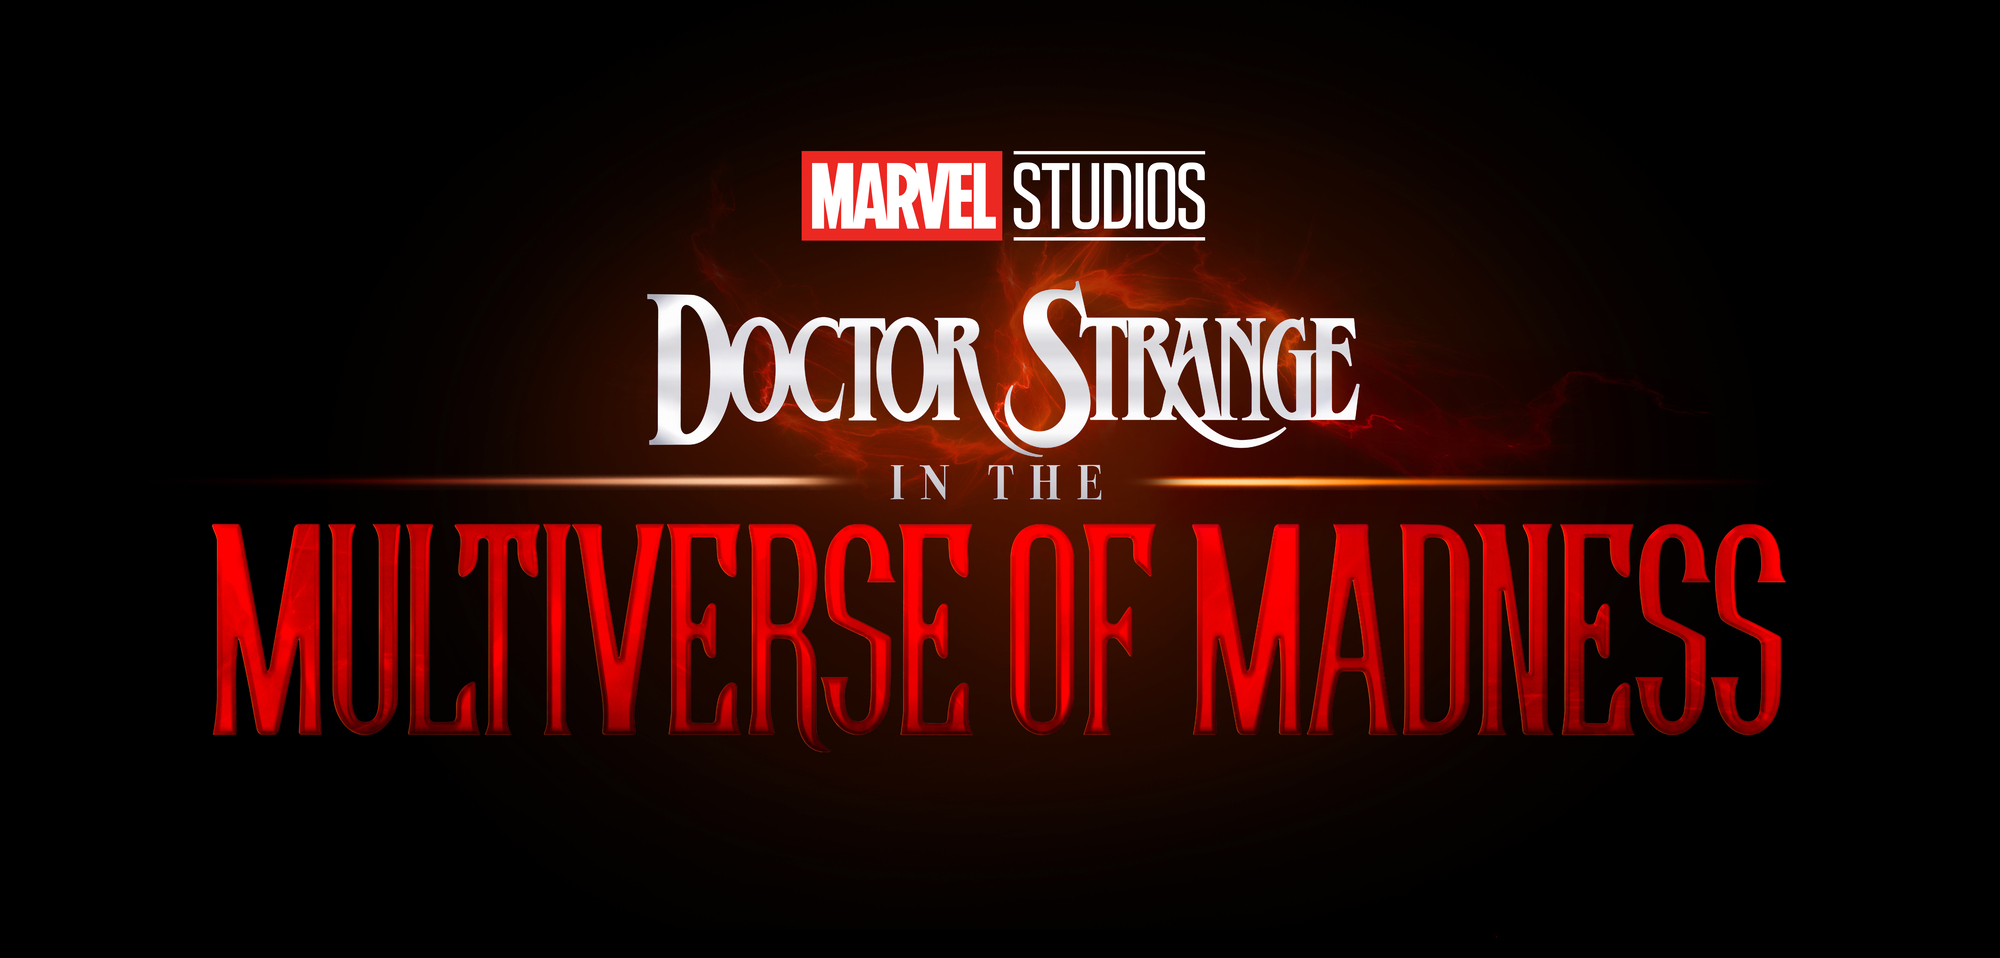 'Doctor Strange in the Multiverse of Madness' - landscape artwork